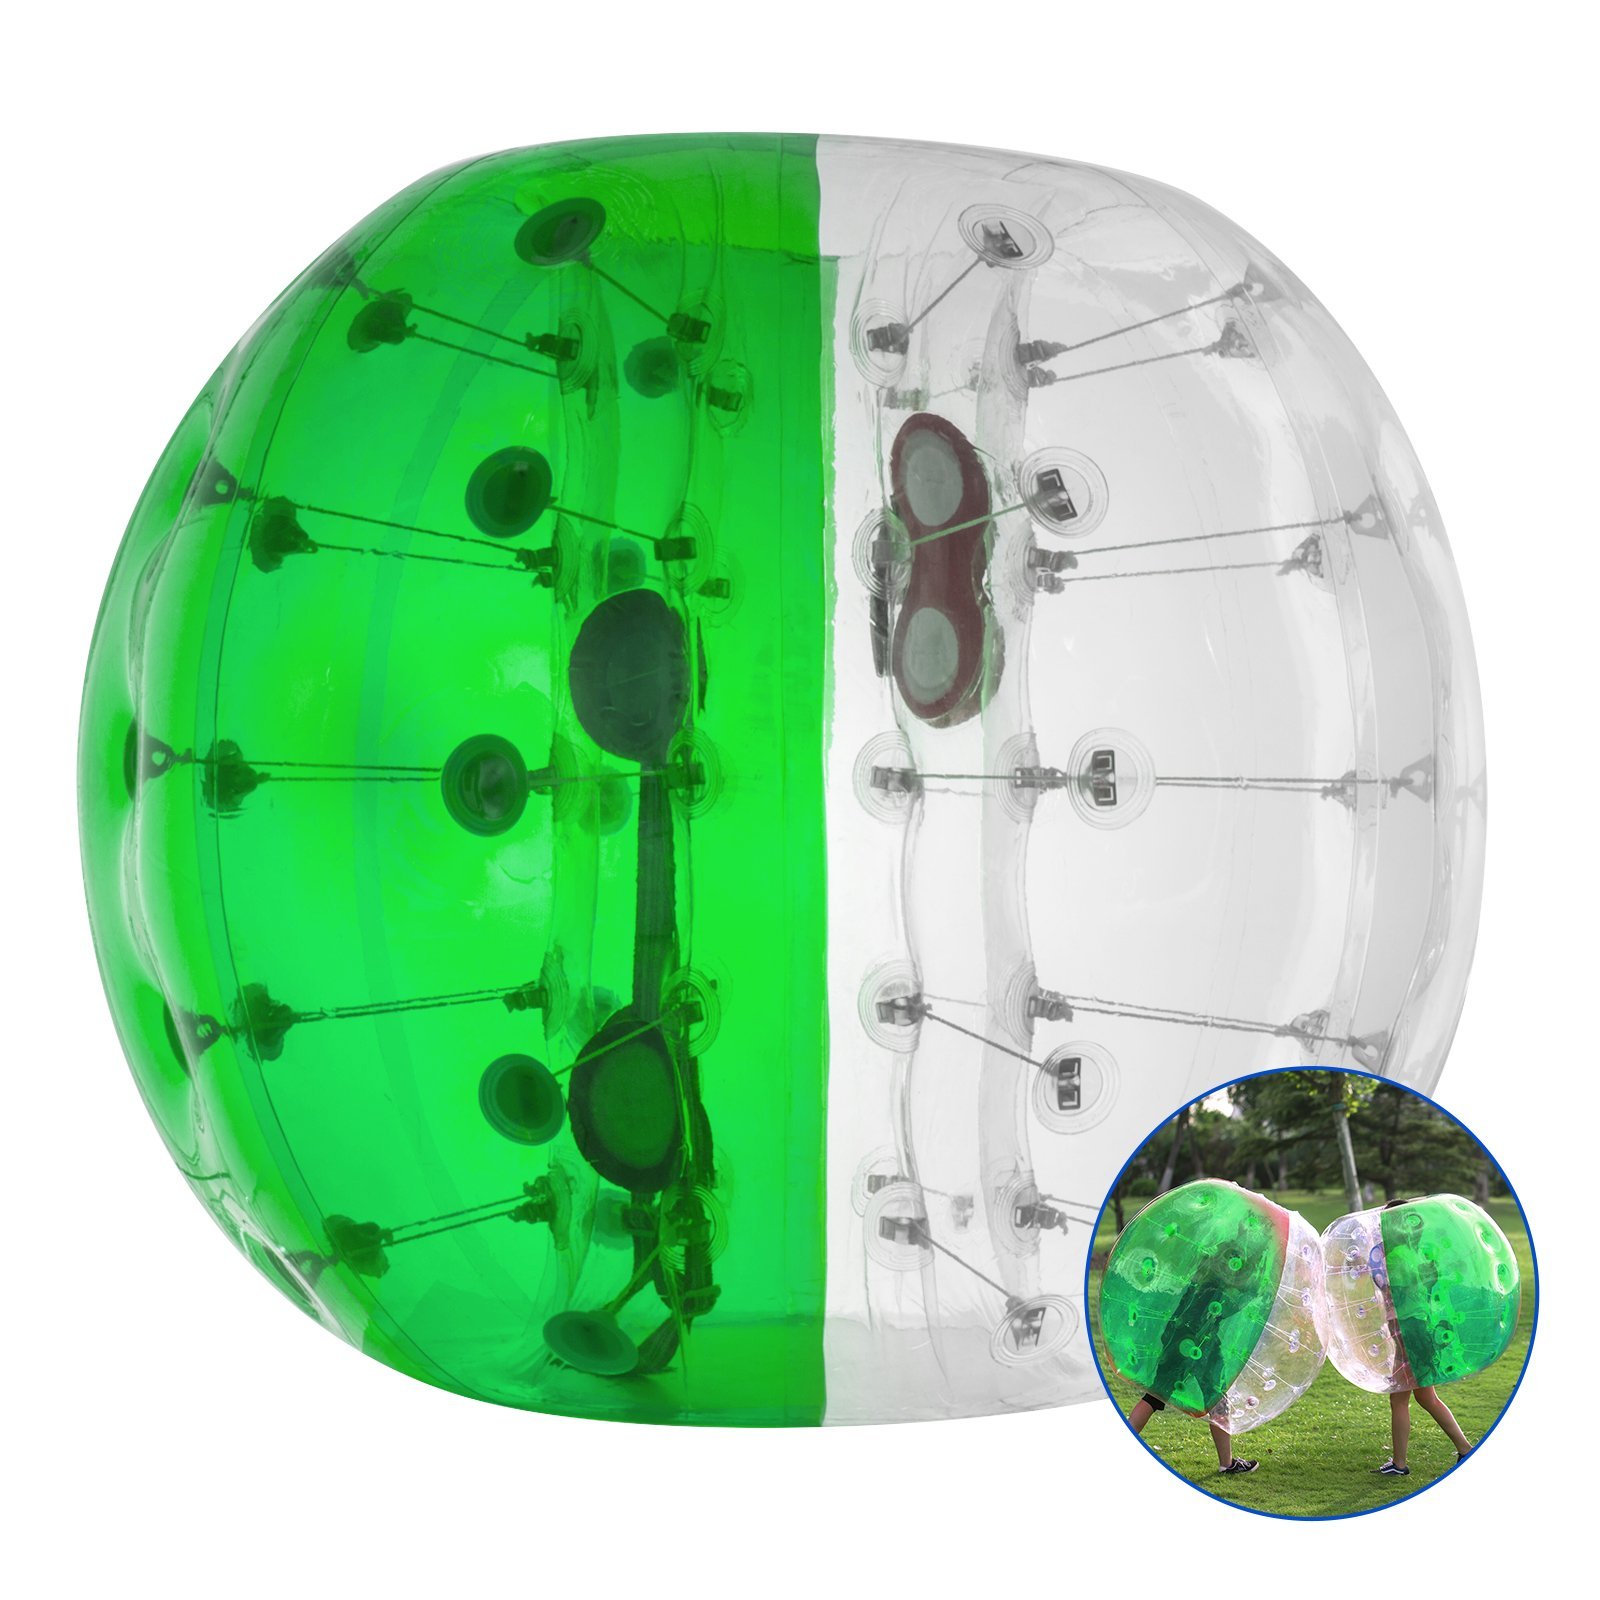 LOVSHARE 5FT Inflatable Bumper PVC Bubble Soccer Ball Dia 5FT 1.5M Zorbing Giant Human Hamster Ball for Adults or Child (5FT Green and Transparent) by LOVSHARE